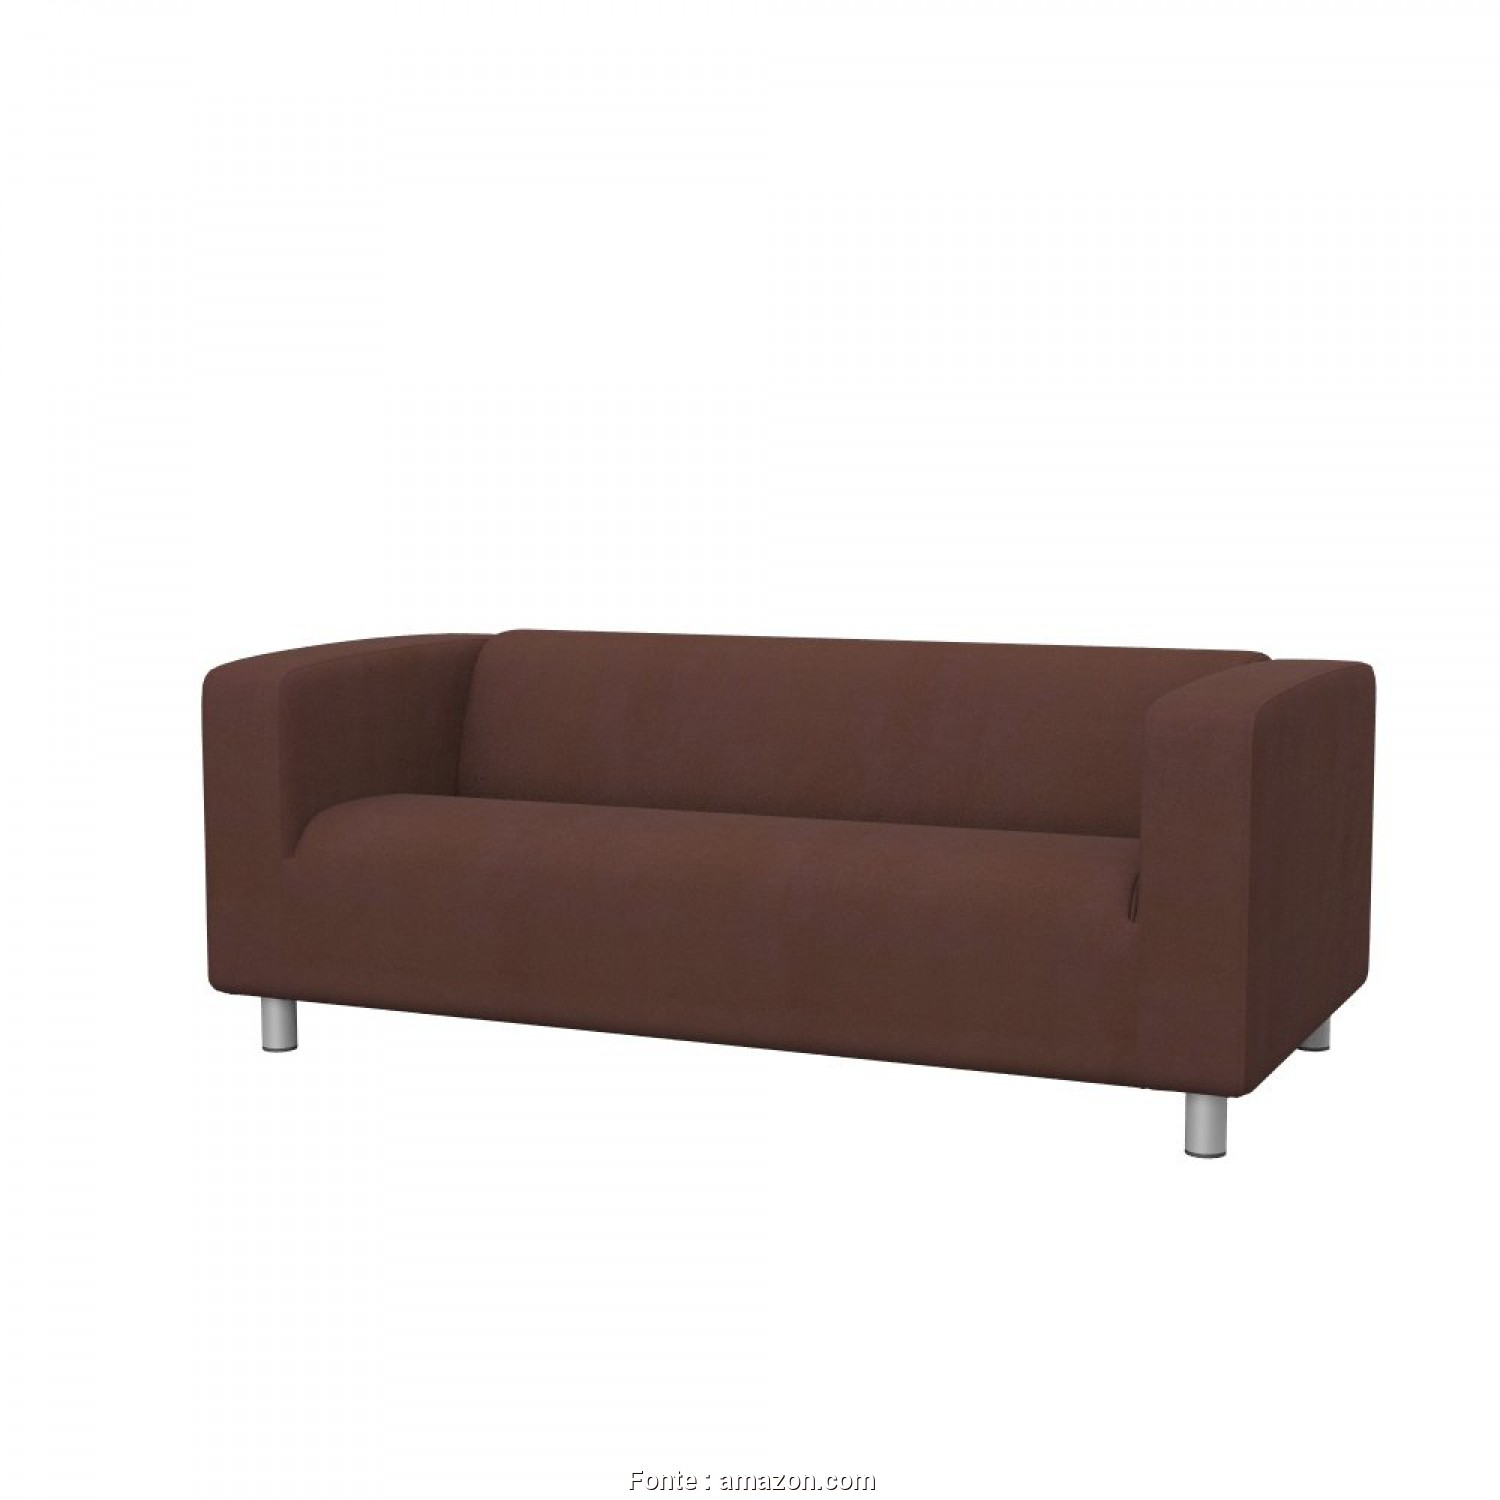 Ikea Klippan Leather Cover, Divertente Amazon.Com: Soferia, Replacement Cover, IKEA KLIPPAN 2-Seat Sofa,, Leather Bronze: Home & Kitchen